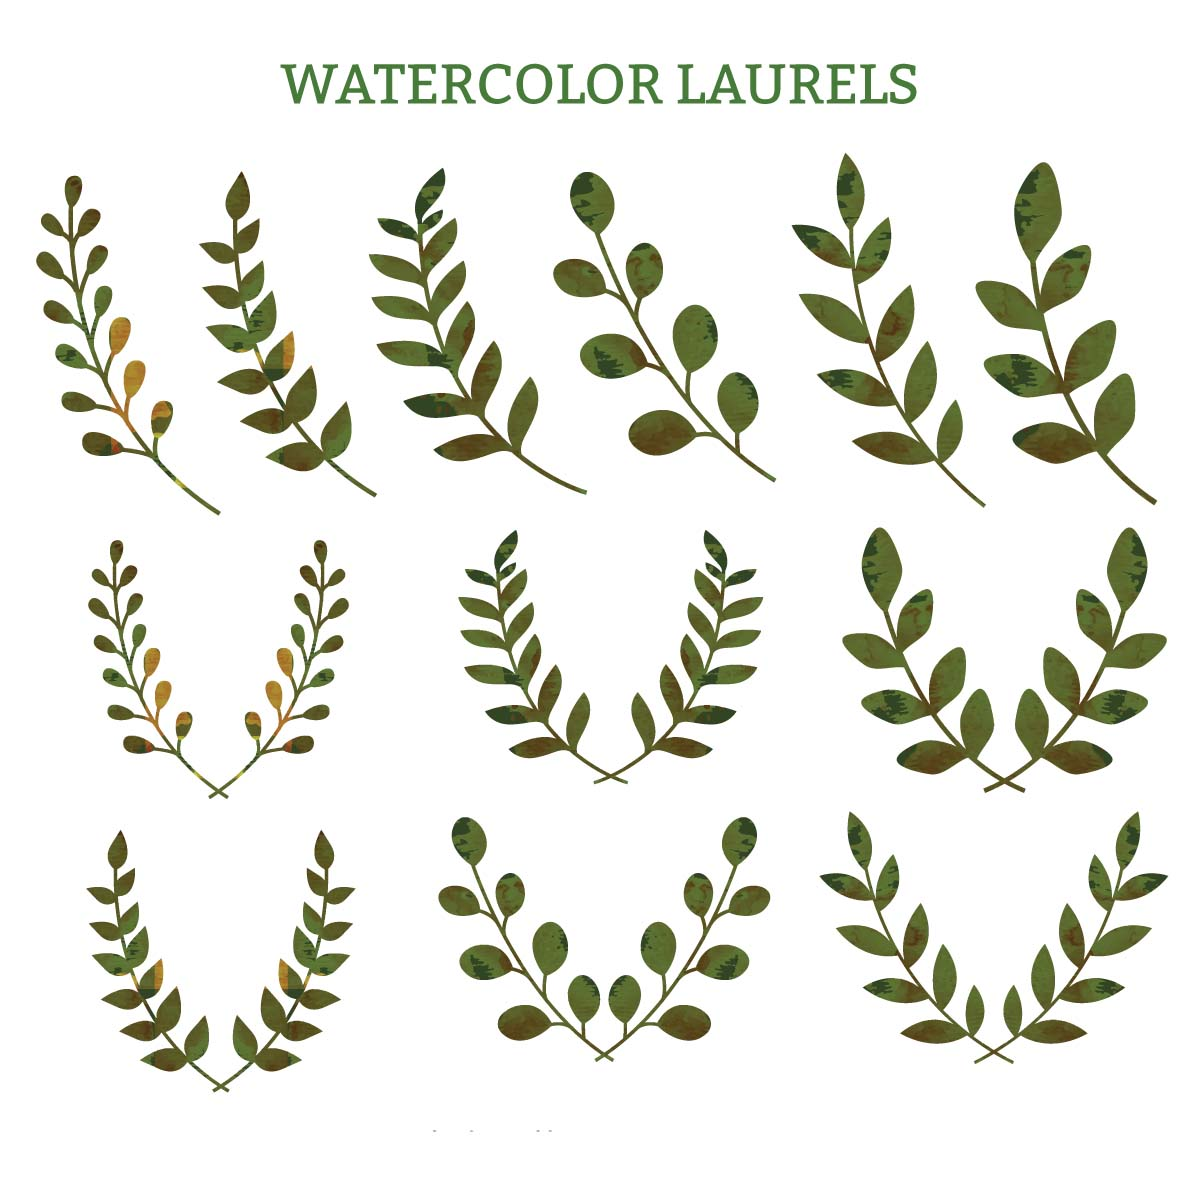 Laurel wreaths watercolor clipart vector.